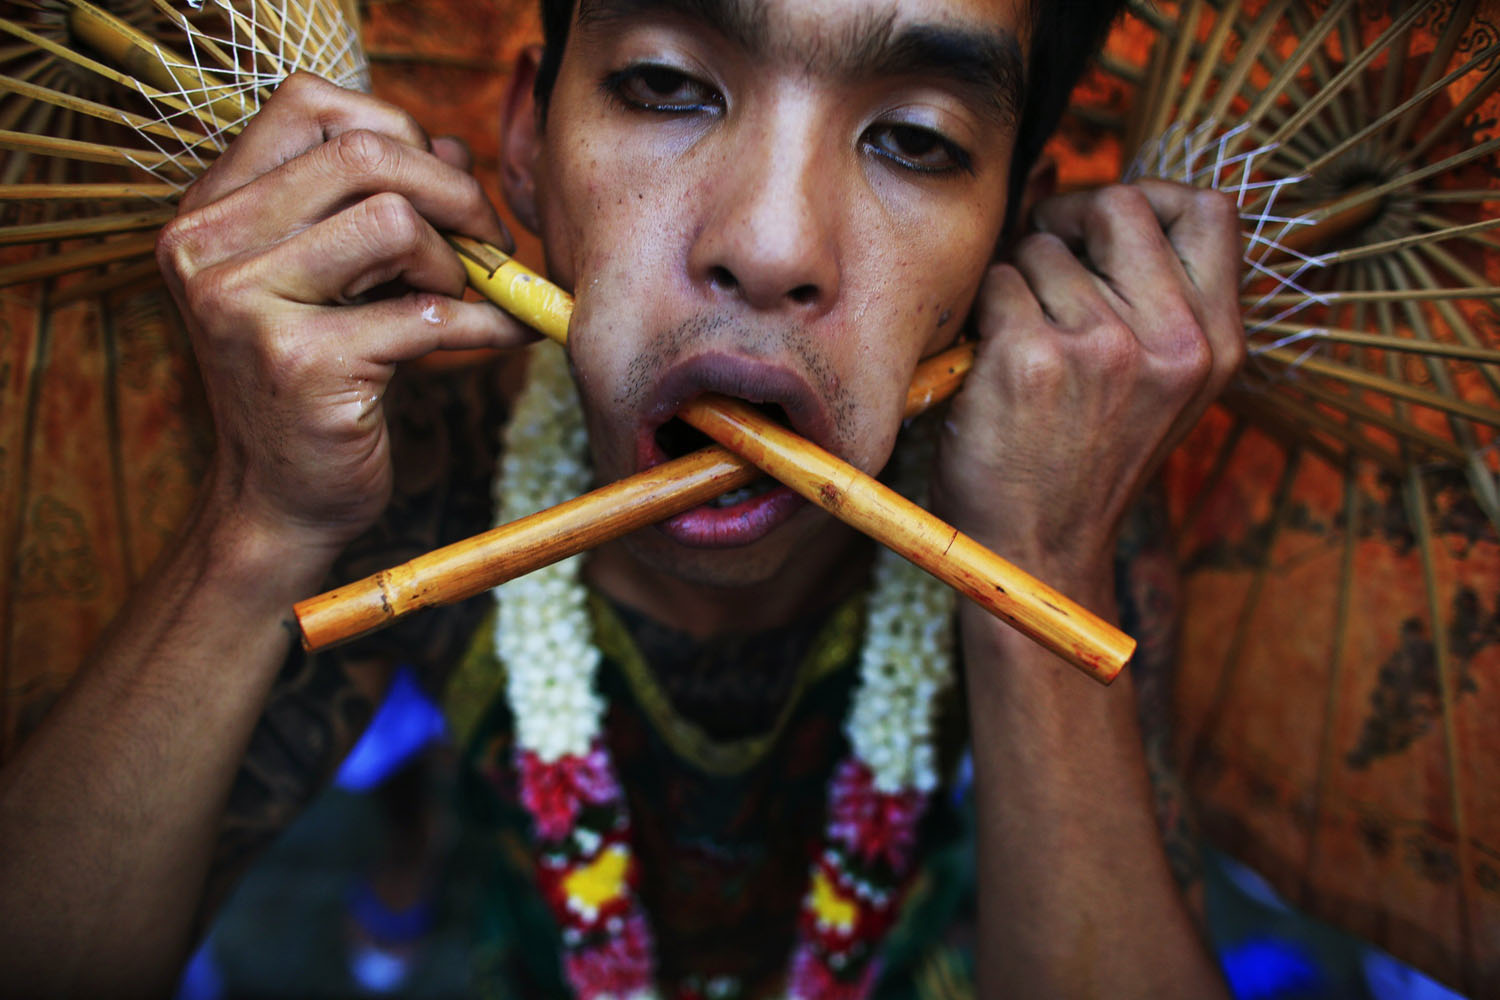 Oct. 11, 2013. A devotee of the Chinese Jui Tui Shrine, with two umbrellas pierced through his cheeks, takes part in a street procession during the annual vegetarian festival in Phuket, Thailand.